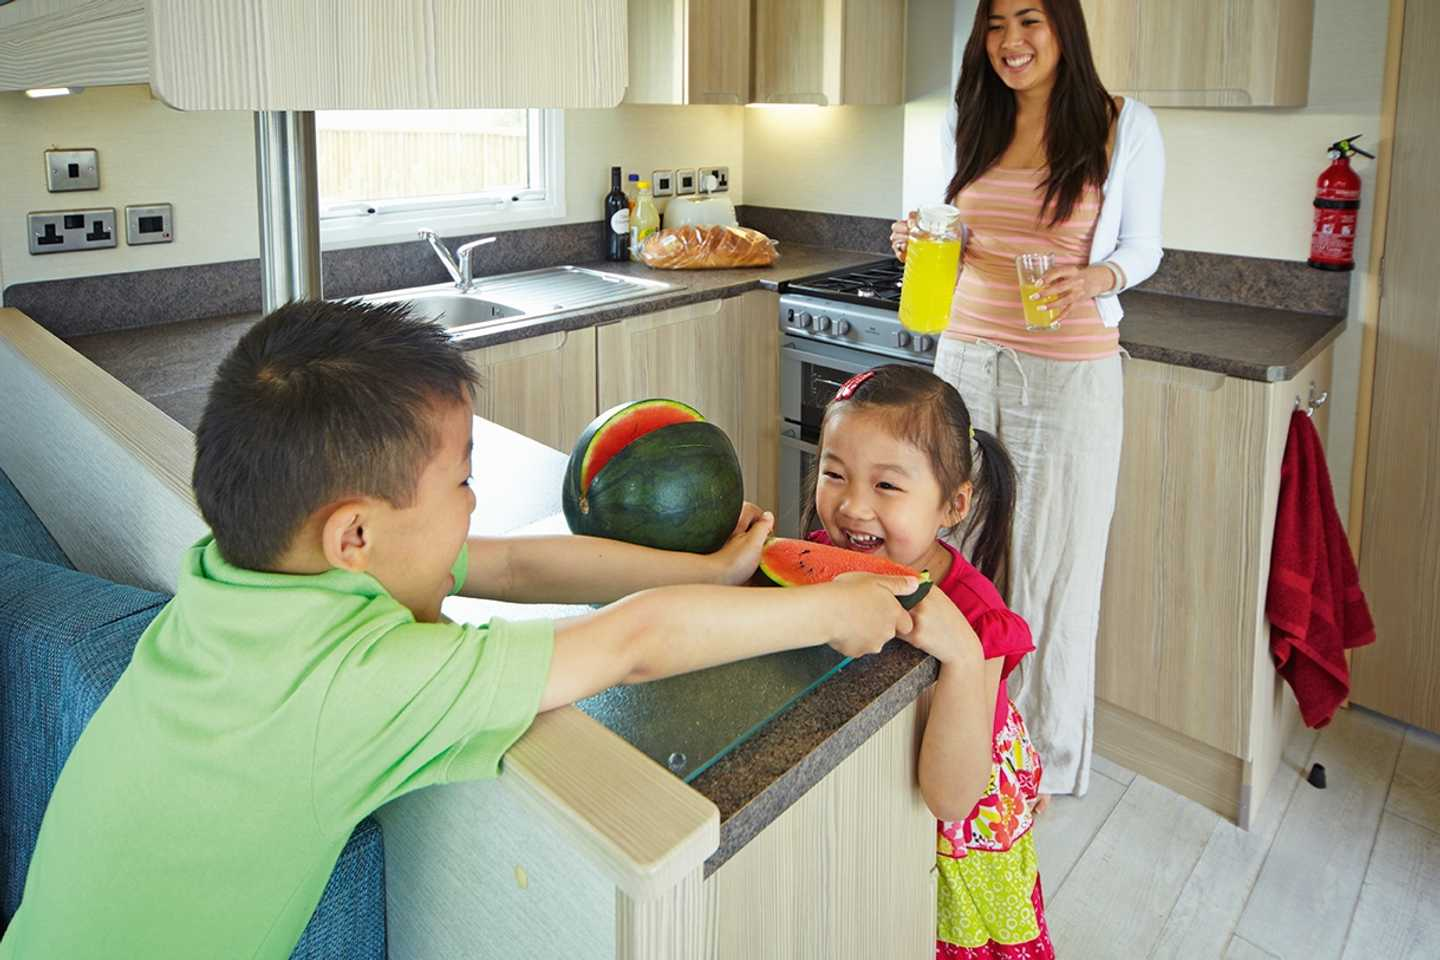 A Prestige caravan kitchen with a family enjoying a water melon and orange juice